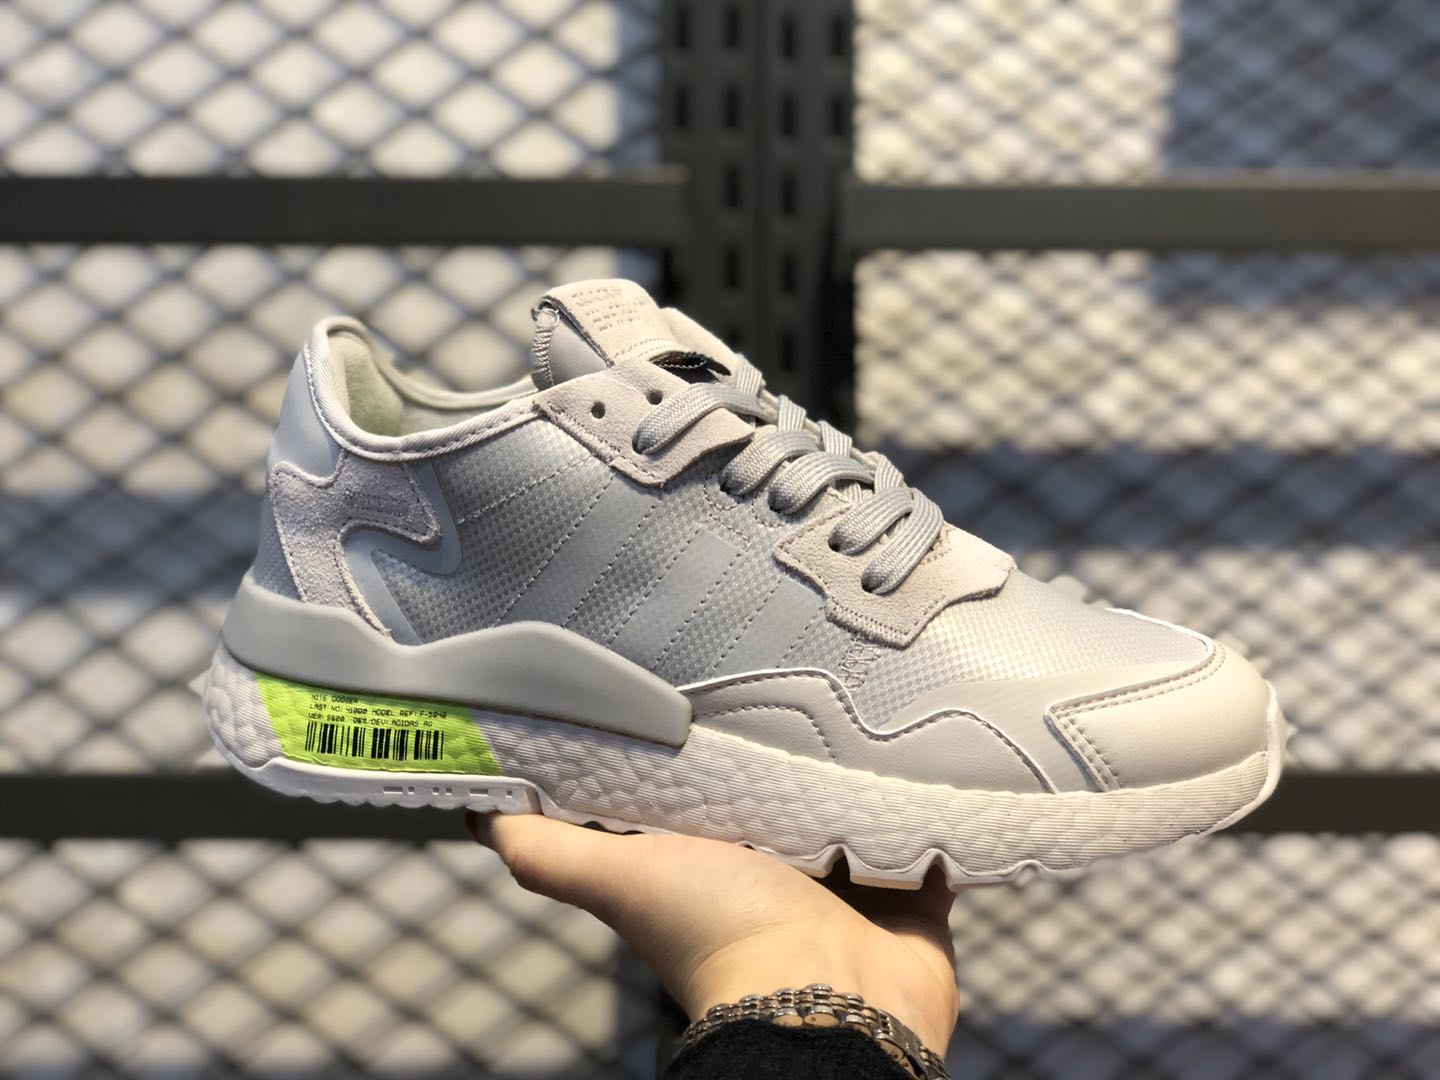 Adidas Nite Jogger 2019 Boost Grey One/Grey Two-Signal Green FV3619